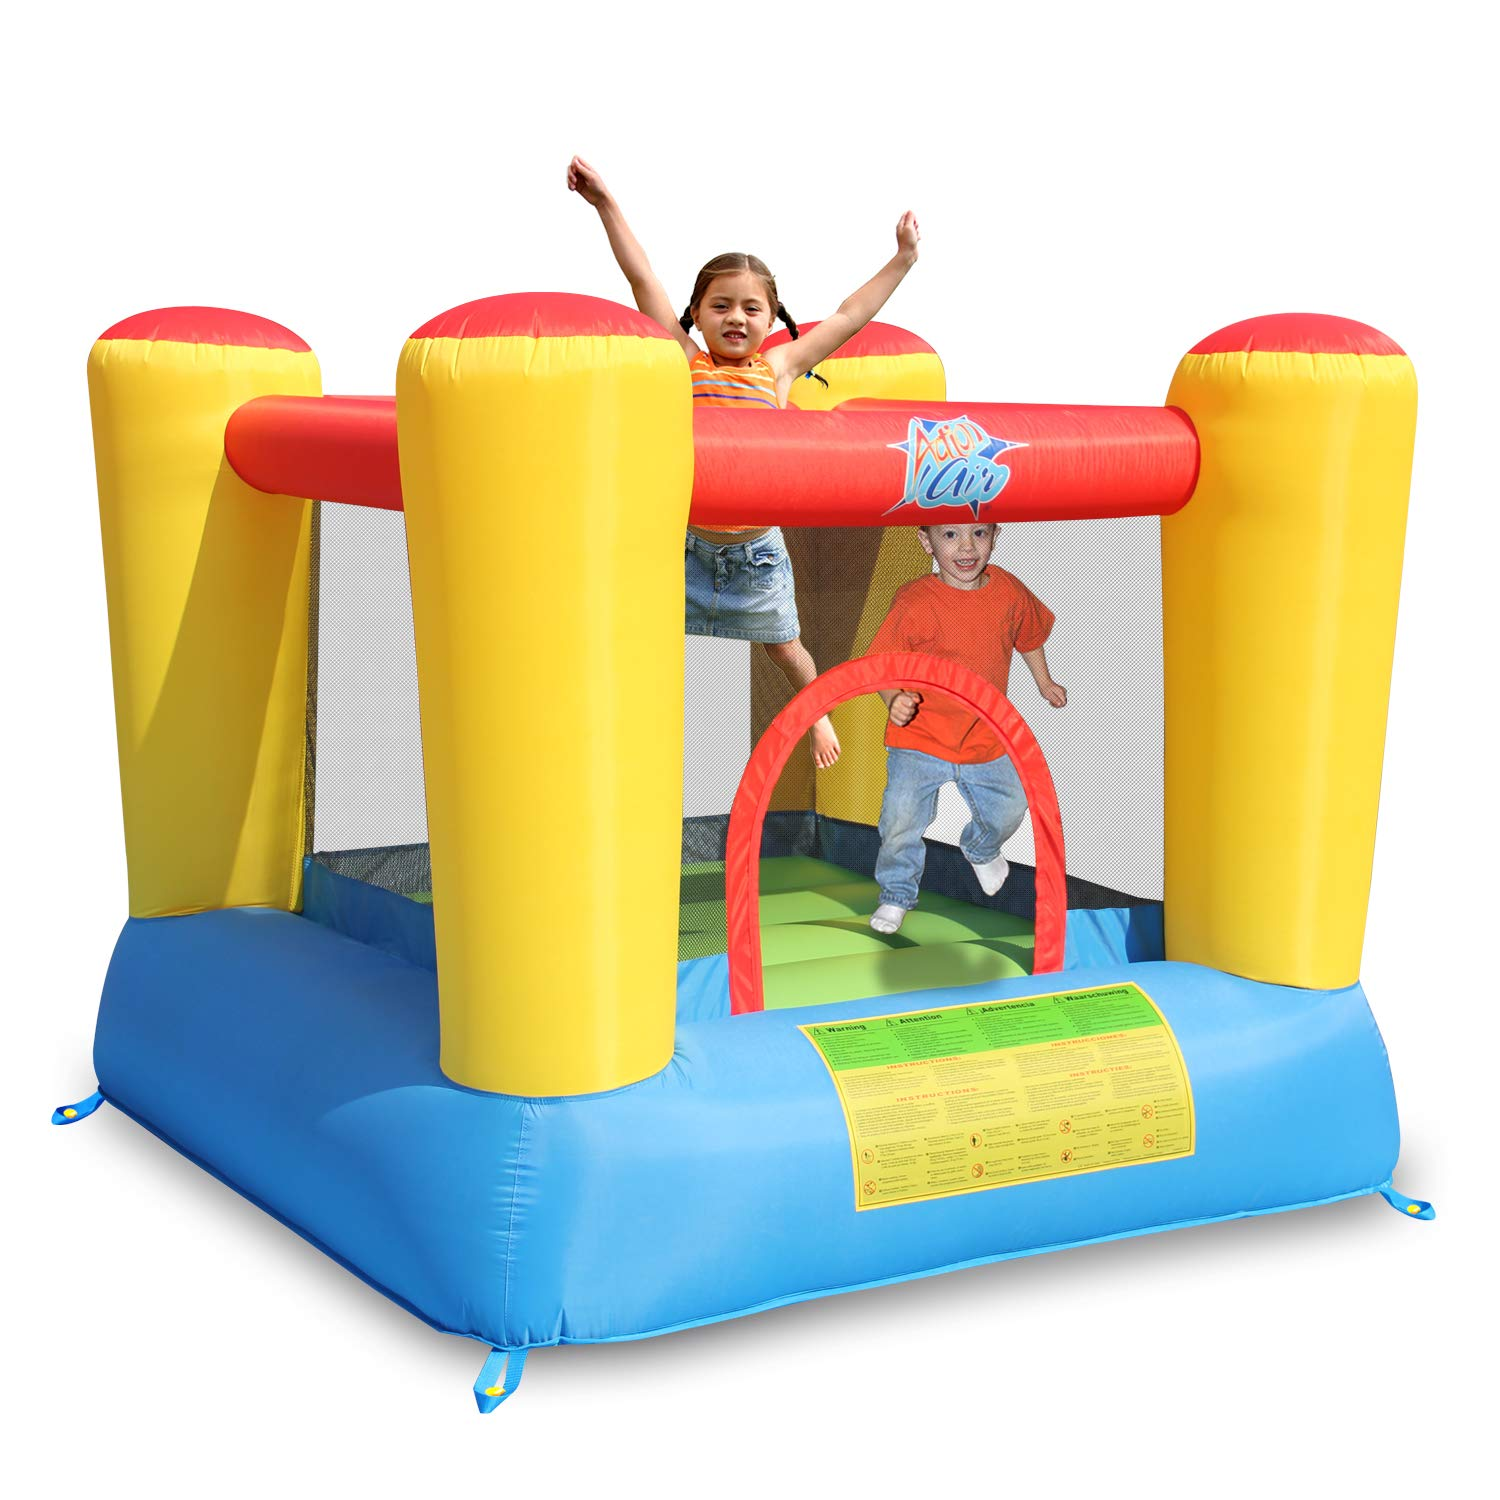 CDM product ACTION AIR Bounce House, Inflatable Bounce House with Blower, Kids Bouncy House for Outdoor and Indoor, Durable Sewn with Extra Thick Material, Idea for Kids (9420) big image